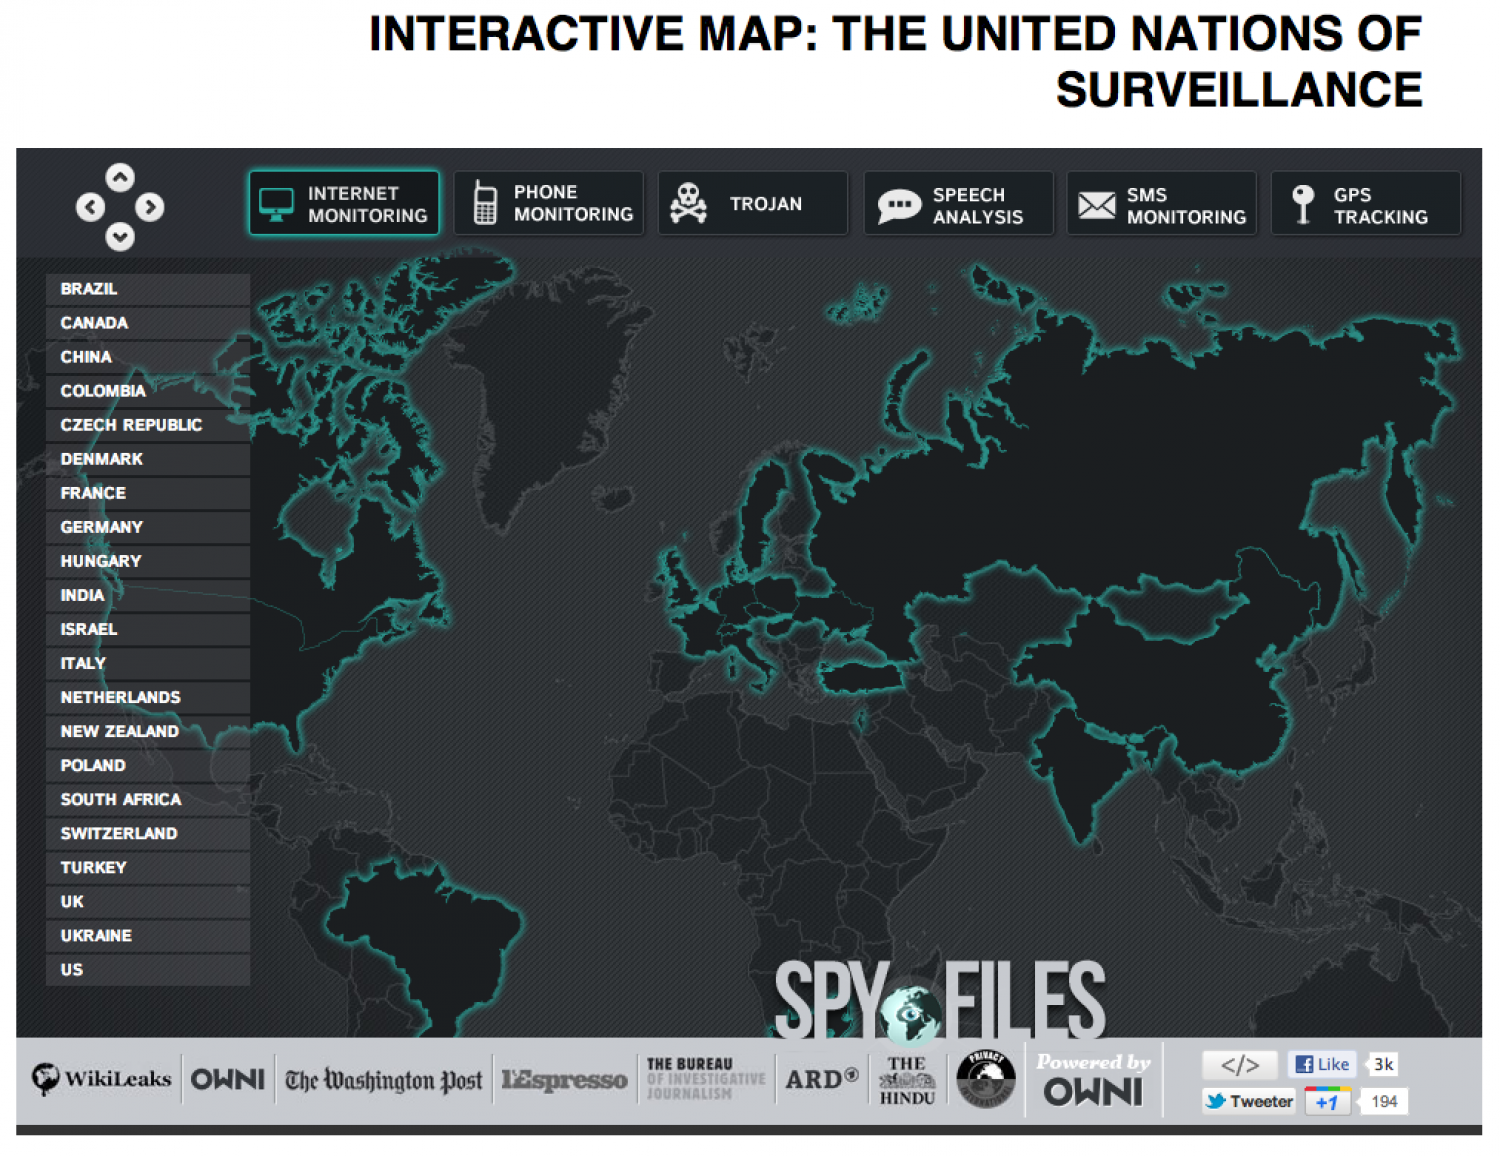 The United Nations of Surveillance Infographic